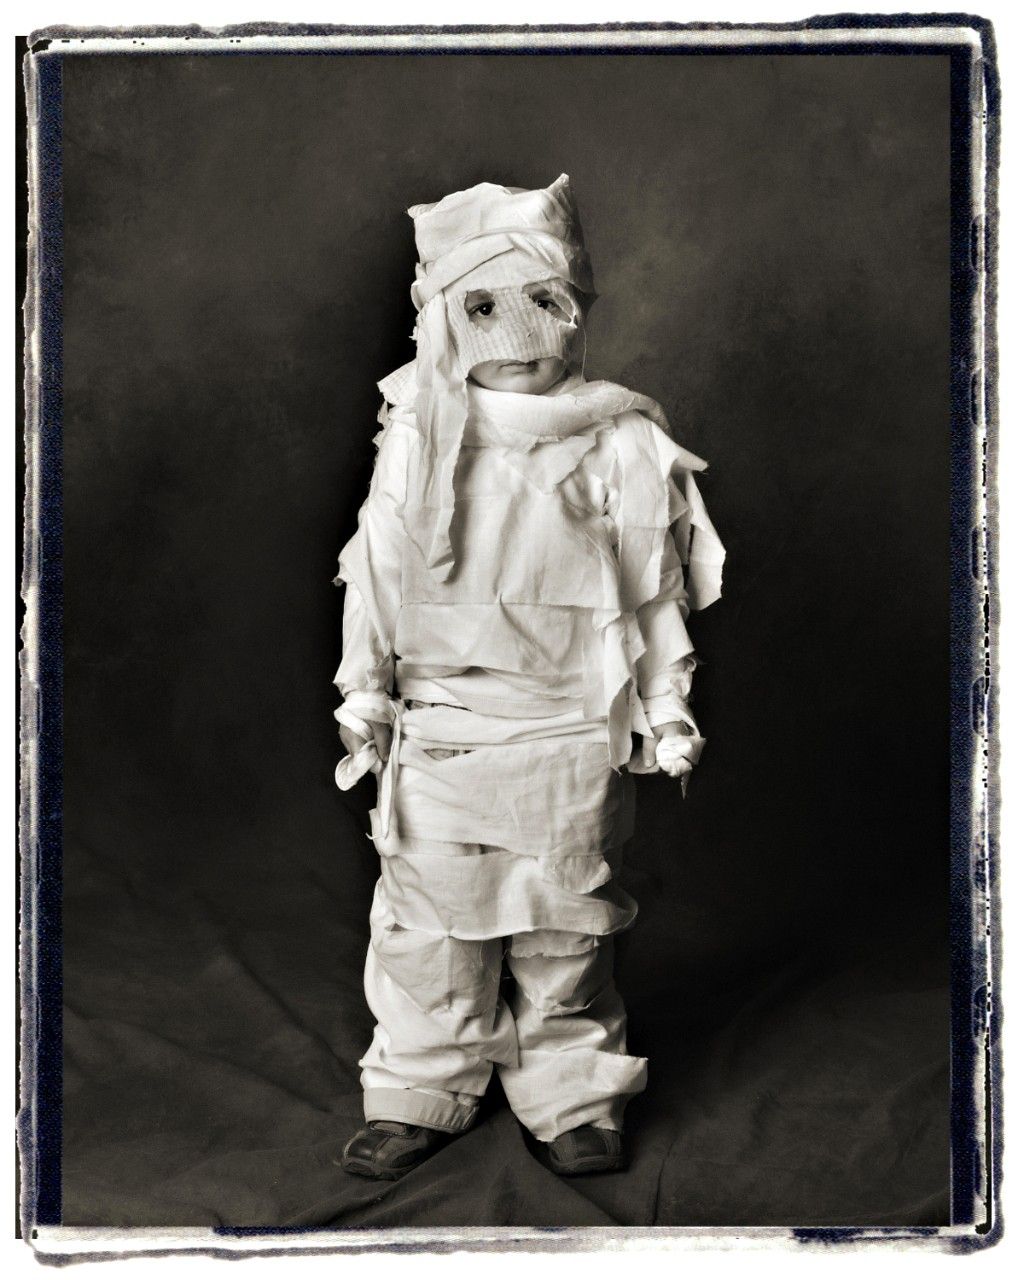 The Mummy, photograph (2005), $250